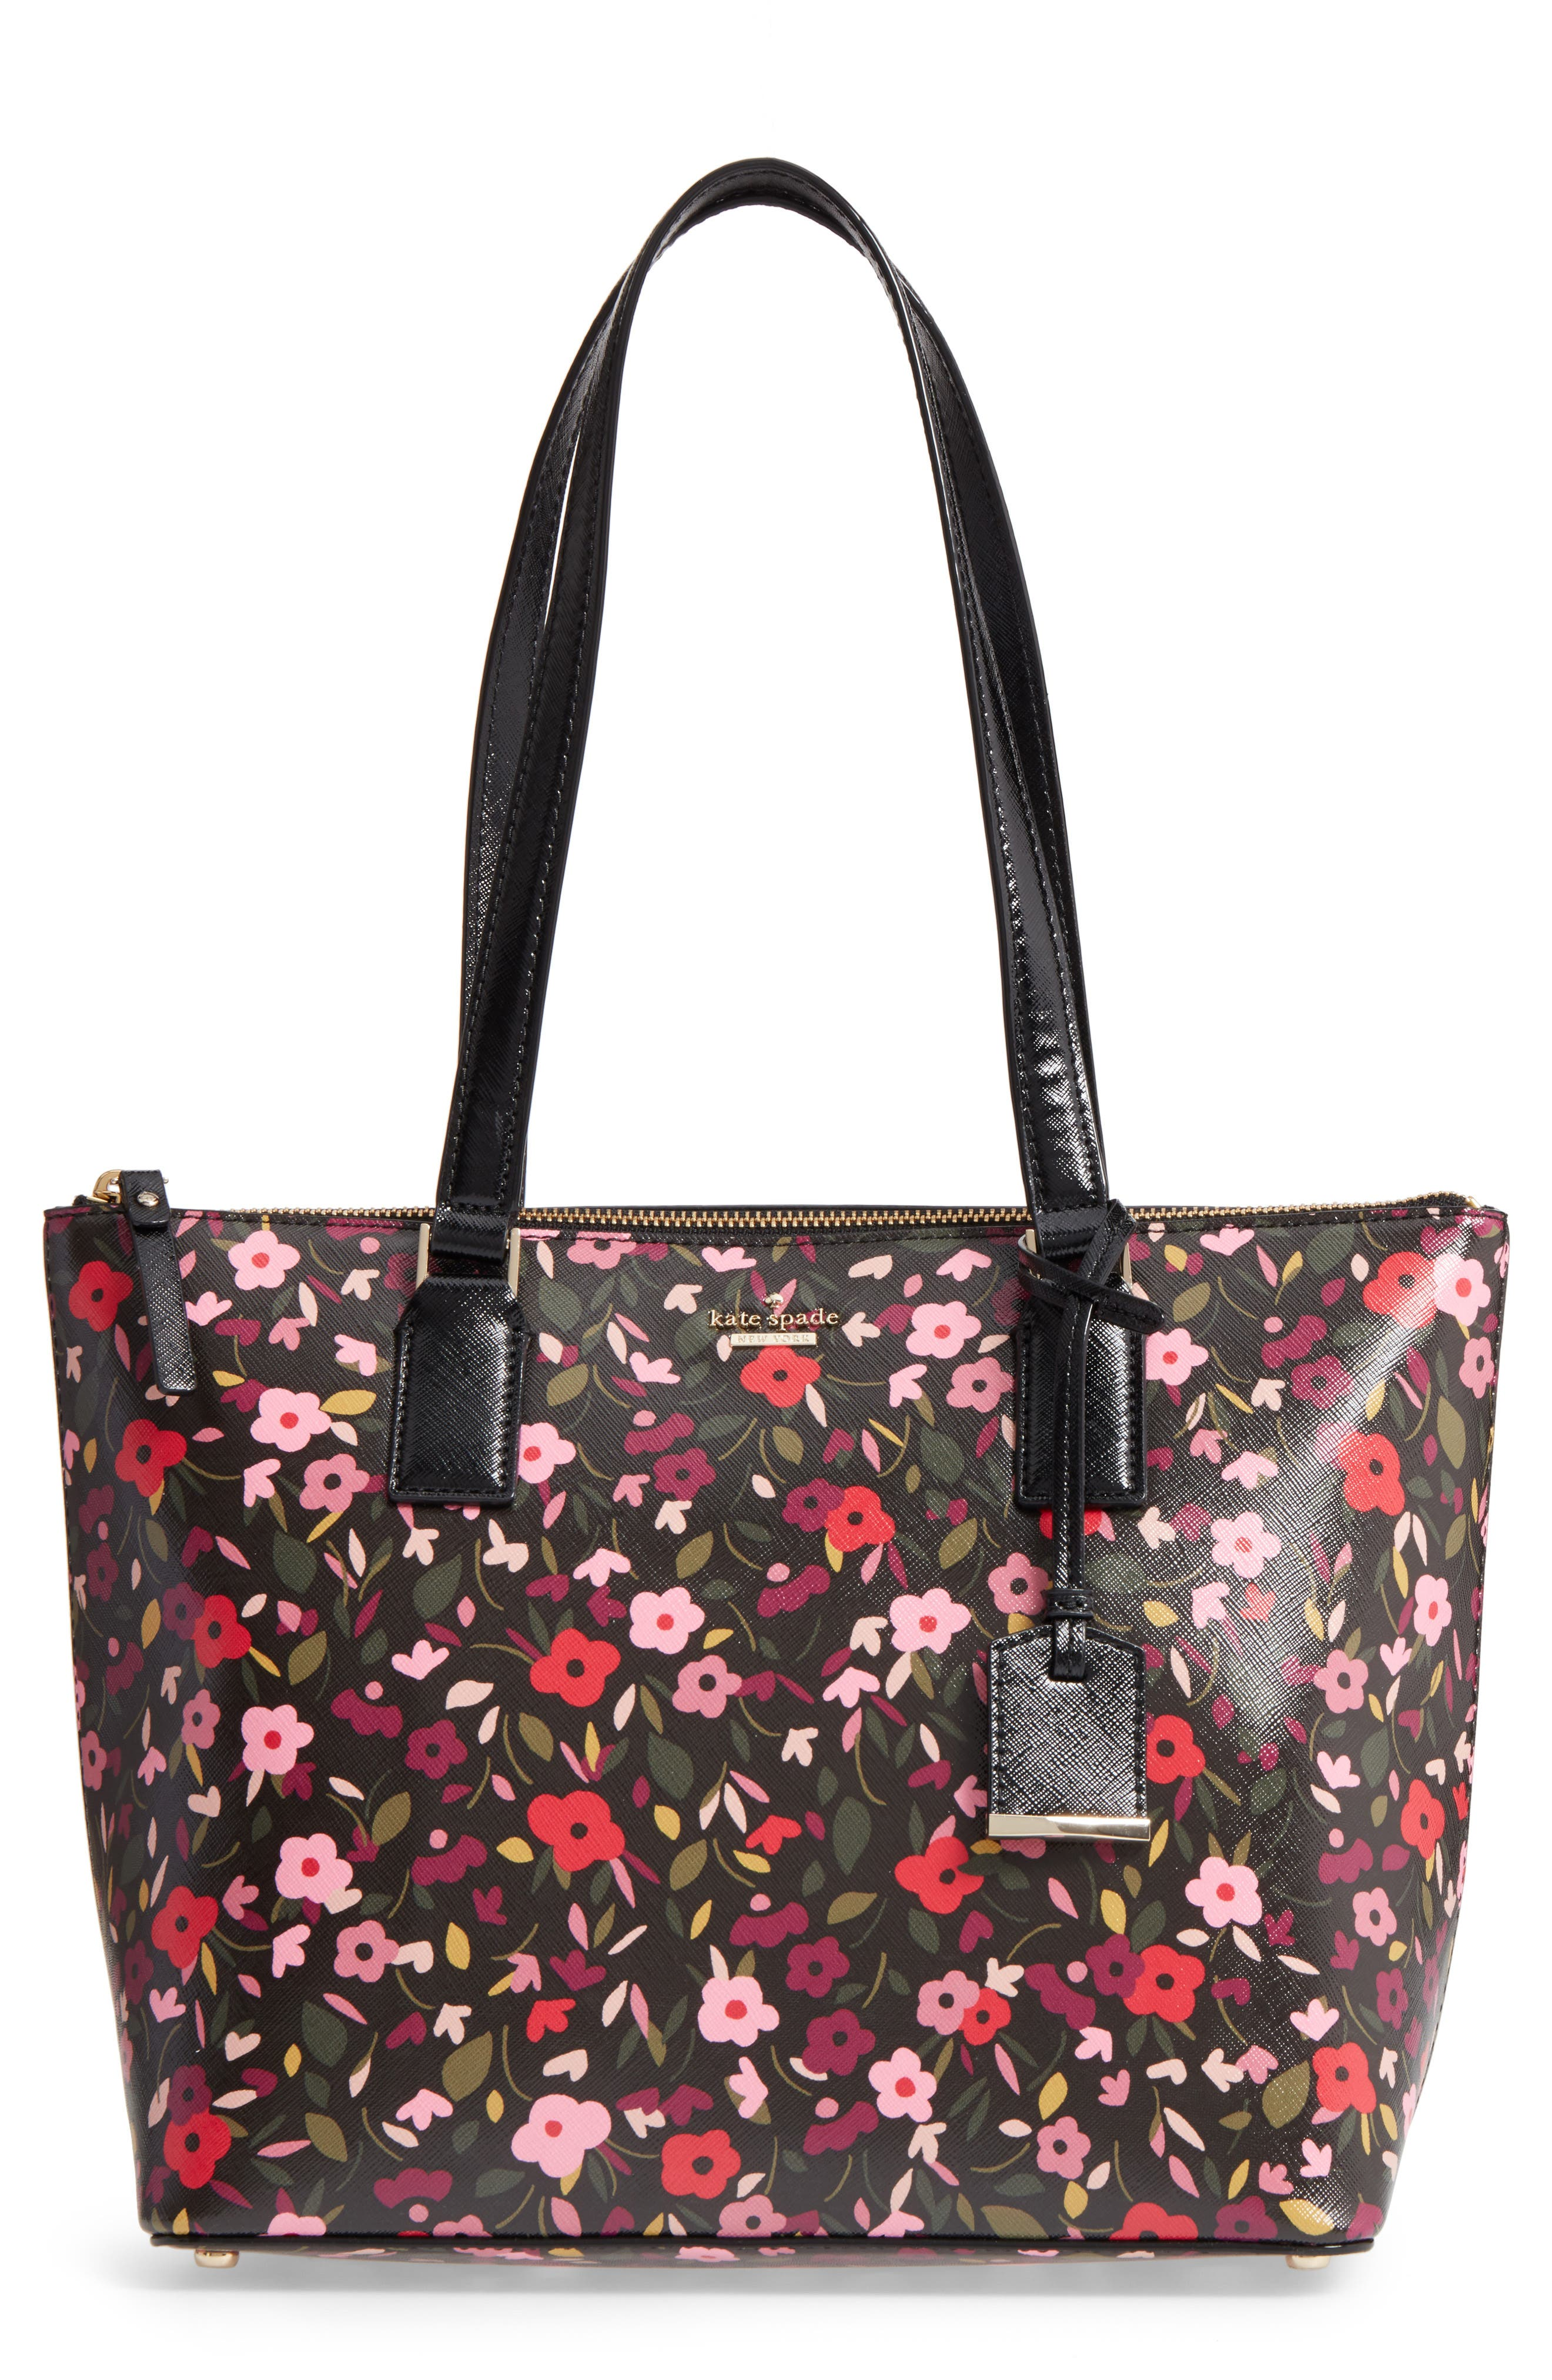 KATE SPADE NEW YORK cameron street - small lucie faux leather tote